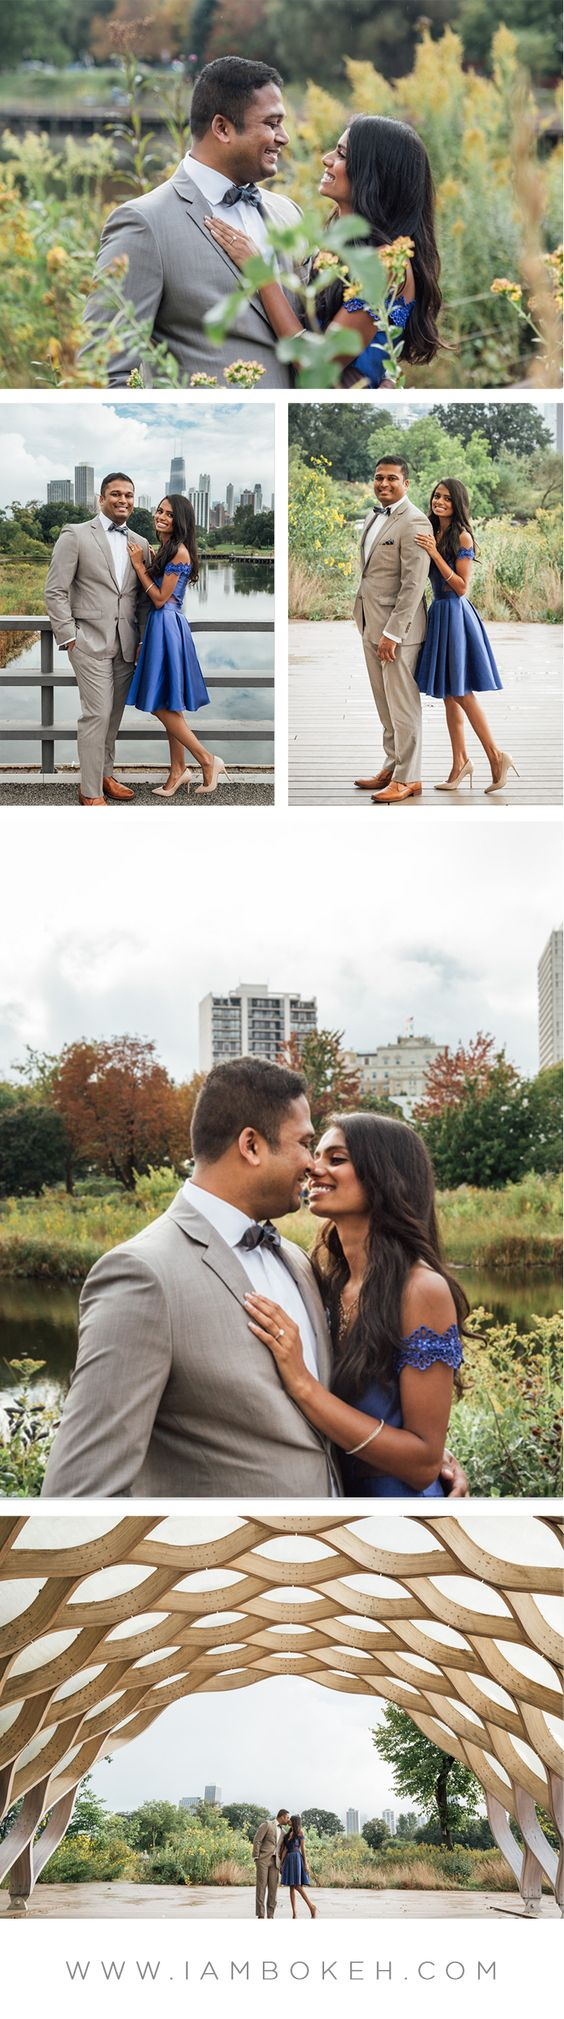 Engagement Shoot in Lincoln Park: Jerry & Rippol